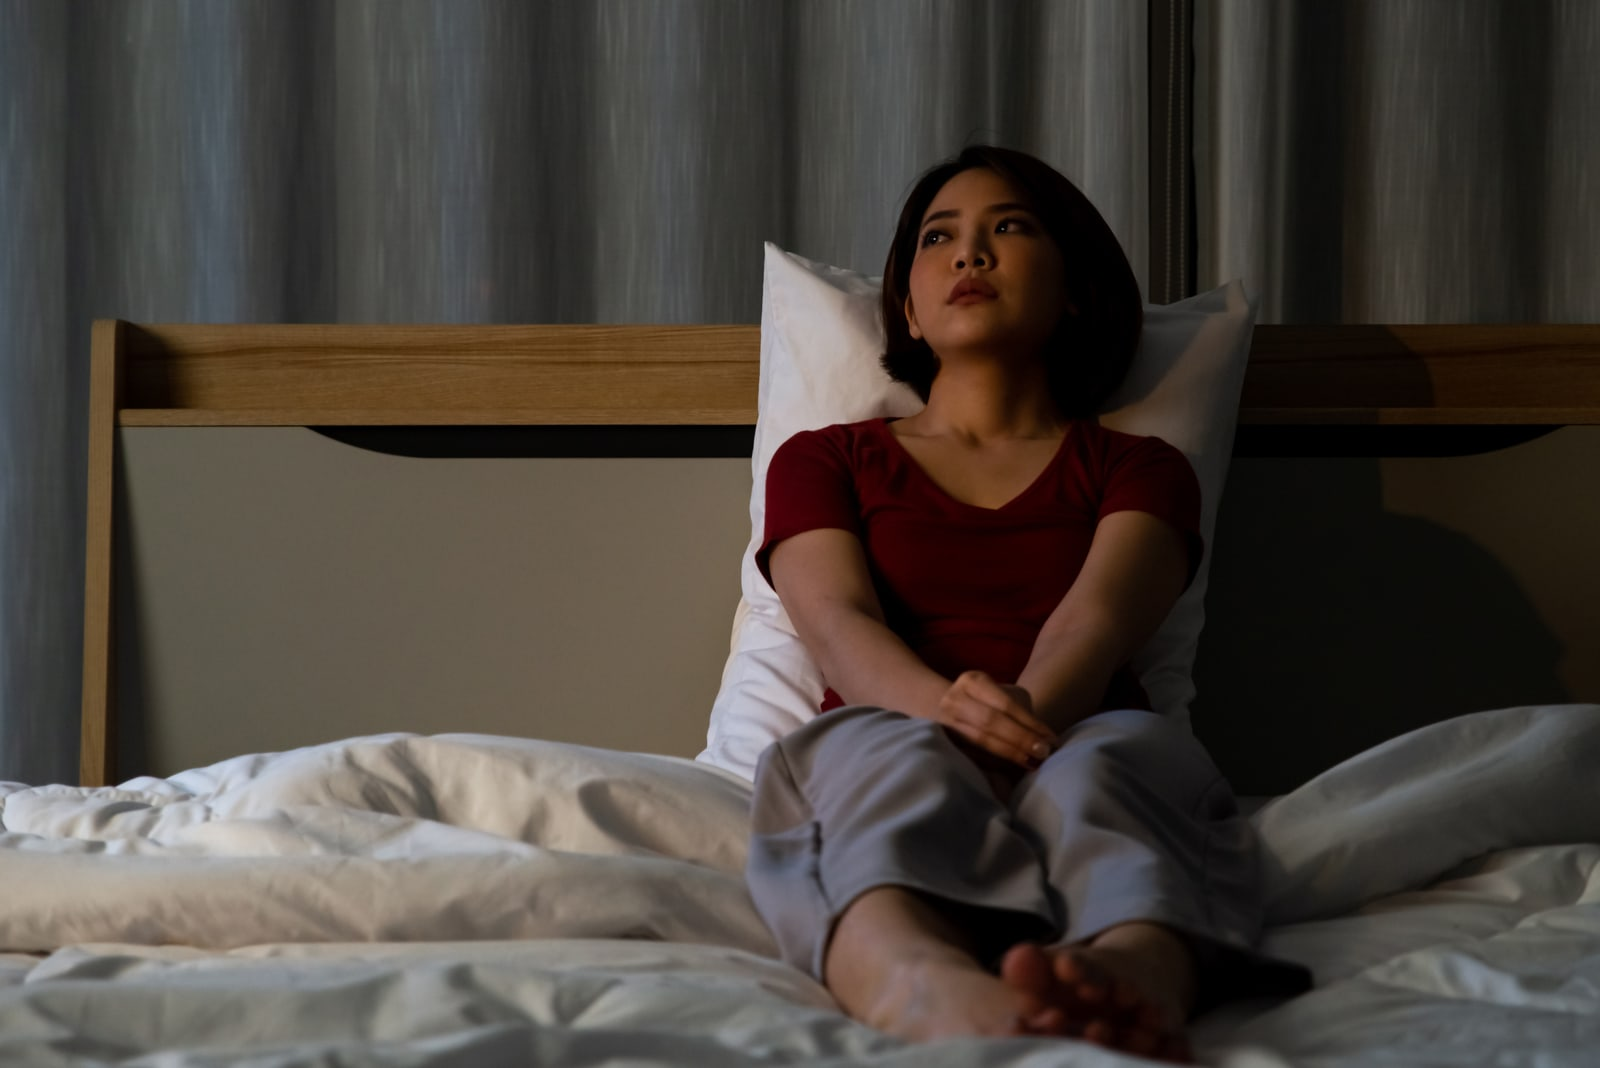 a sad Asian girl sits in bed and thinks